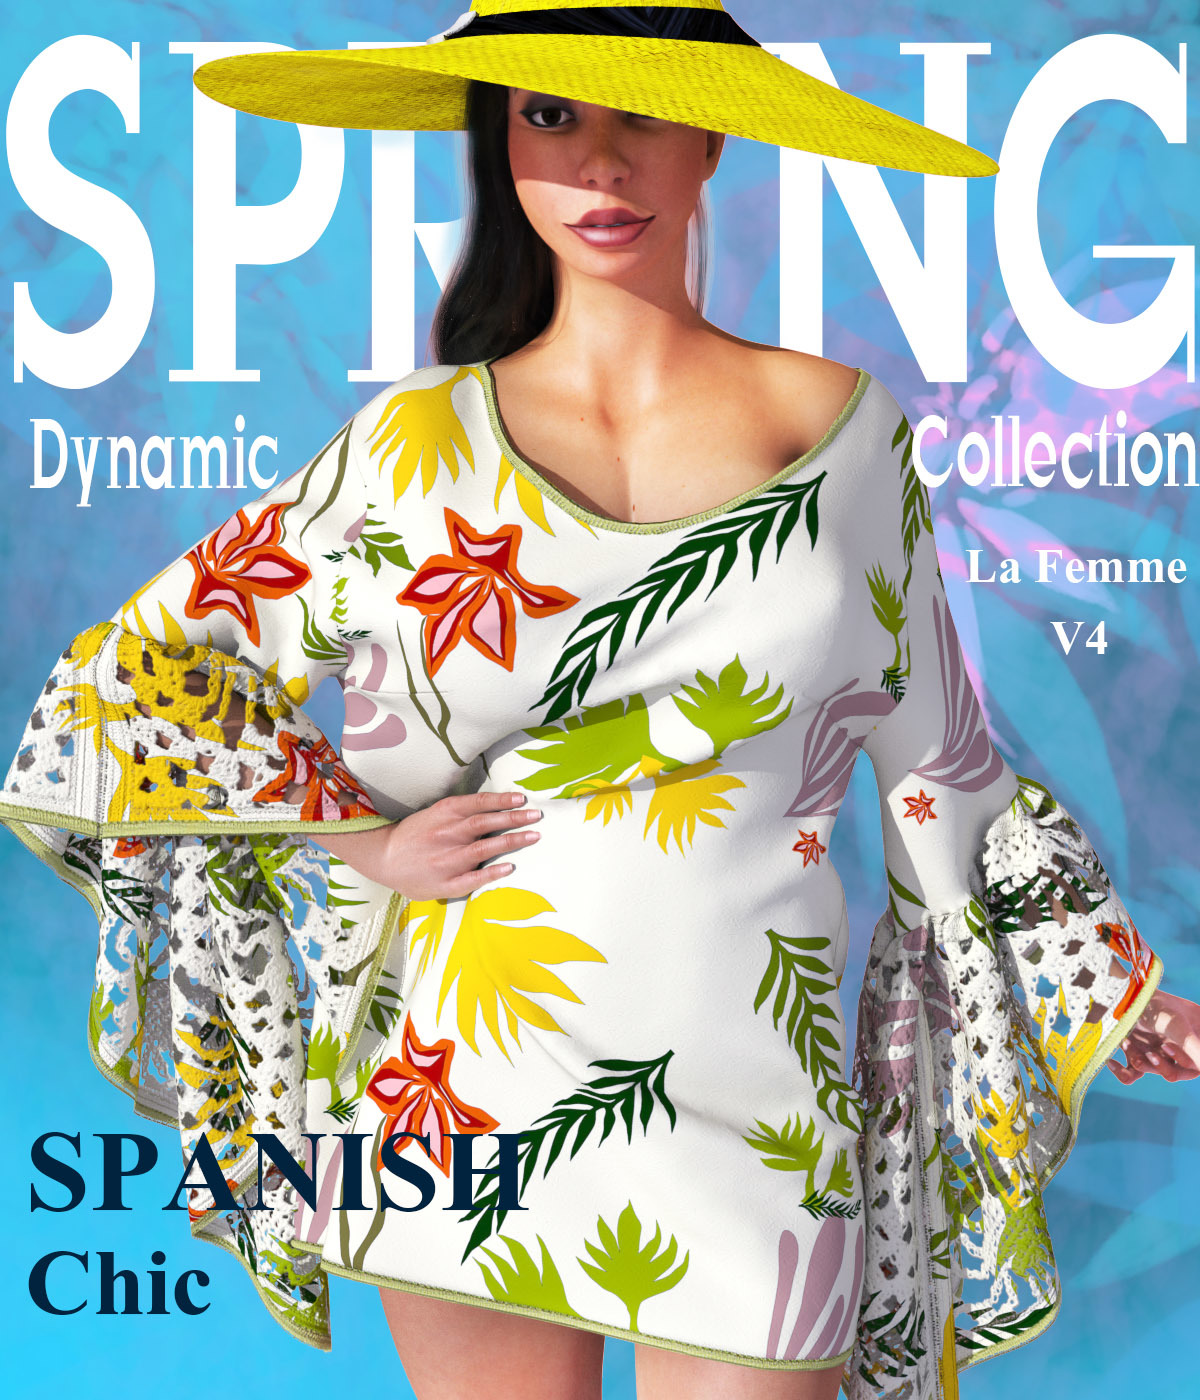 Spring Collection: Spanish Chic La Femme V4 by ShaaraMuse3D